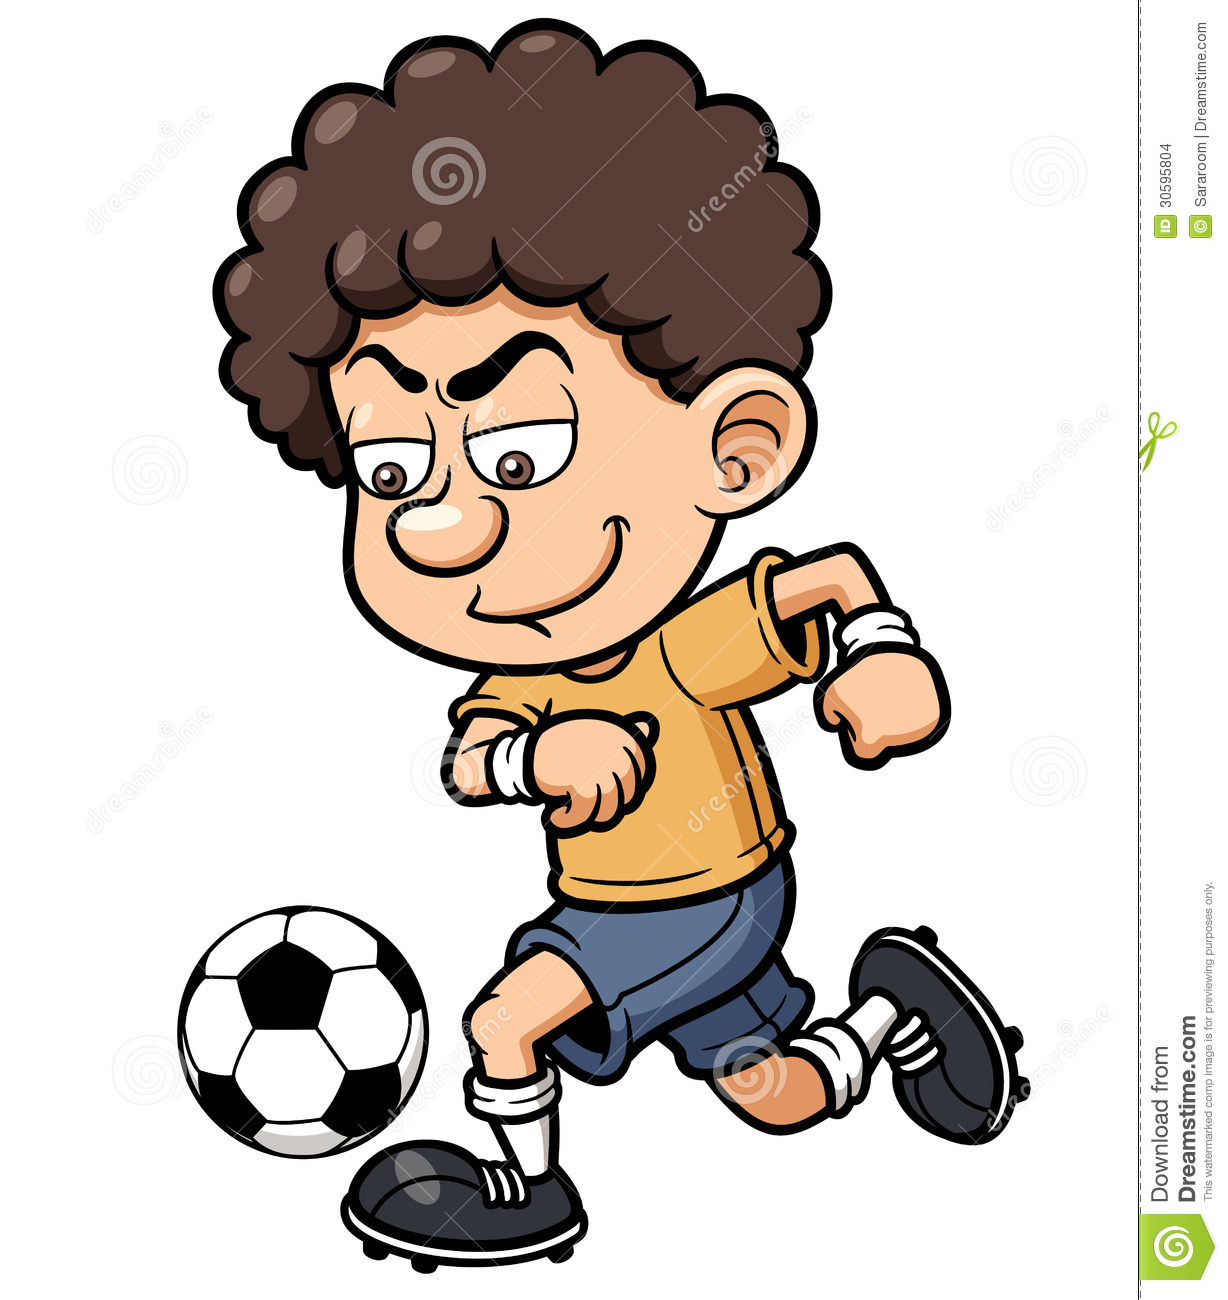 Soccer Player Stock Images - Image: 30595804